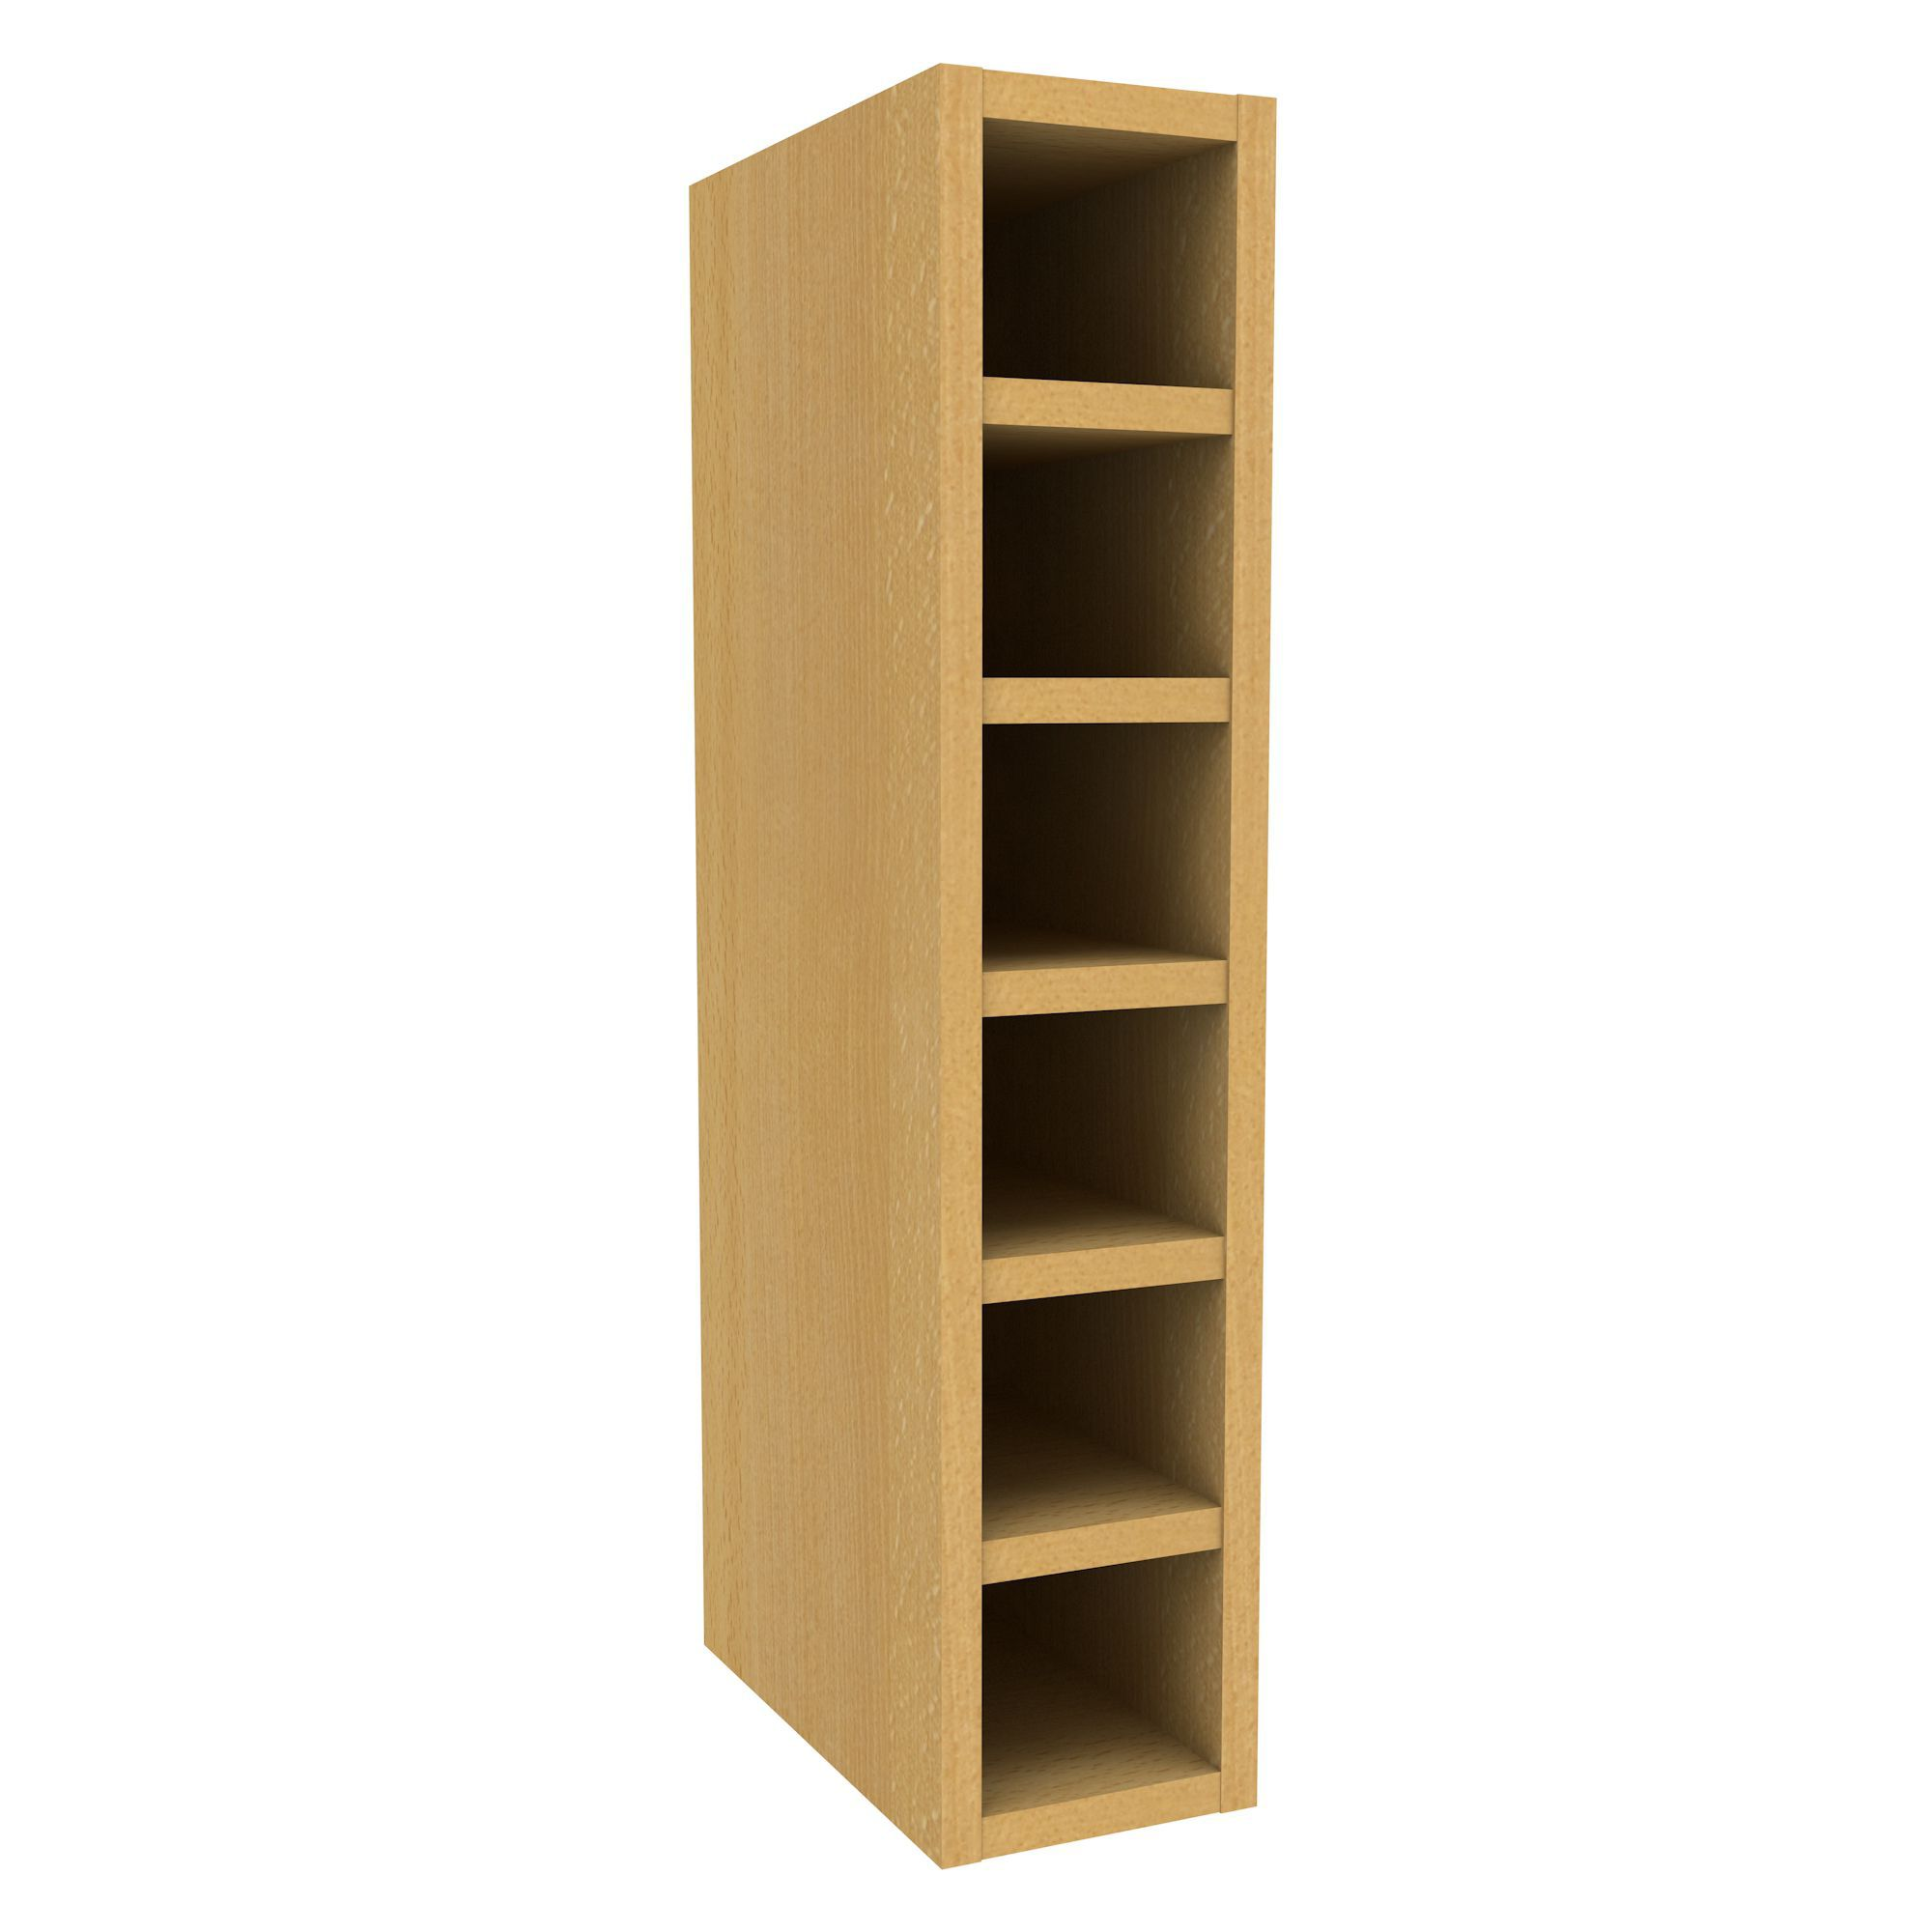 Cooke Lewis Beech Effect Wine Rack Wall Cabinet W 150mm Departments Diy At B Q